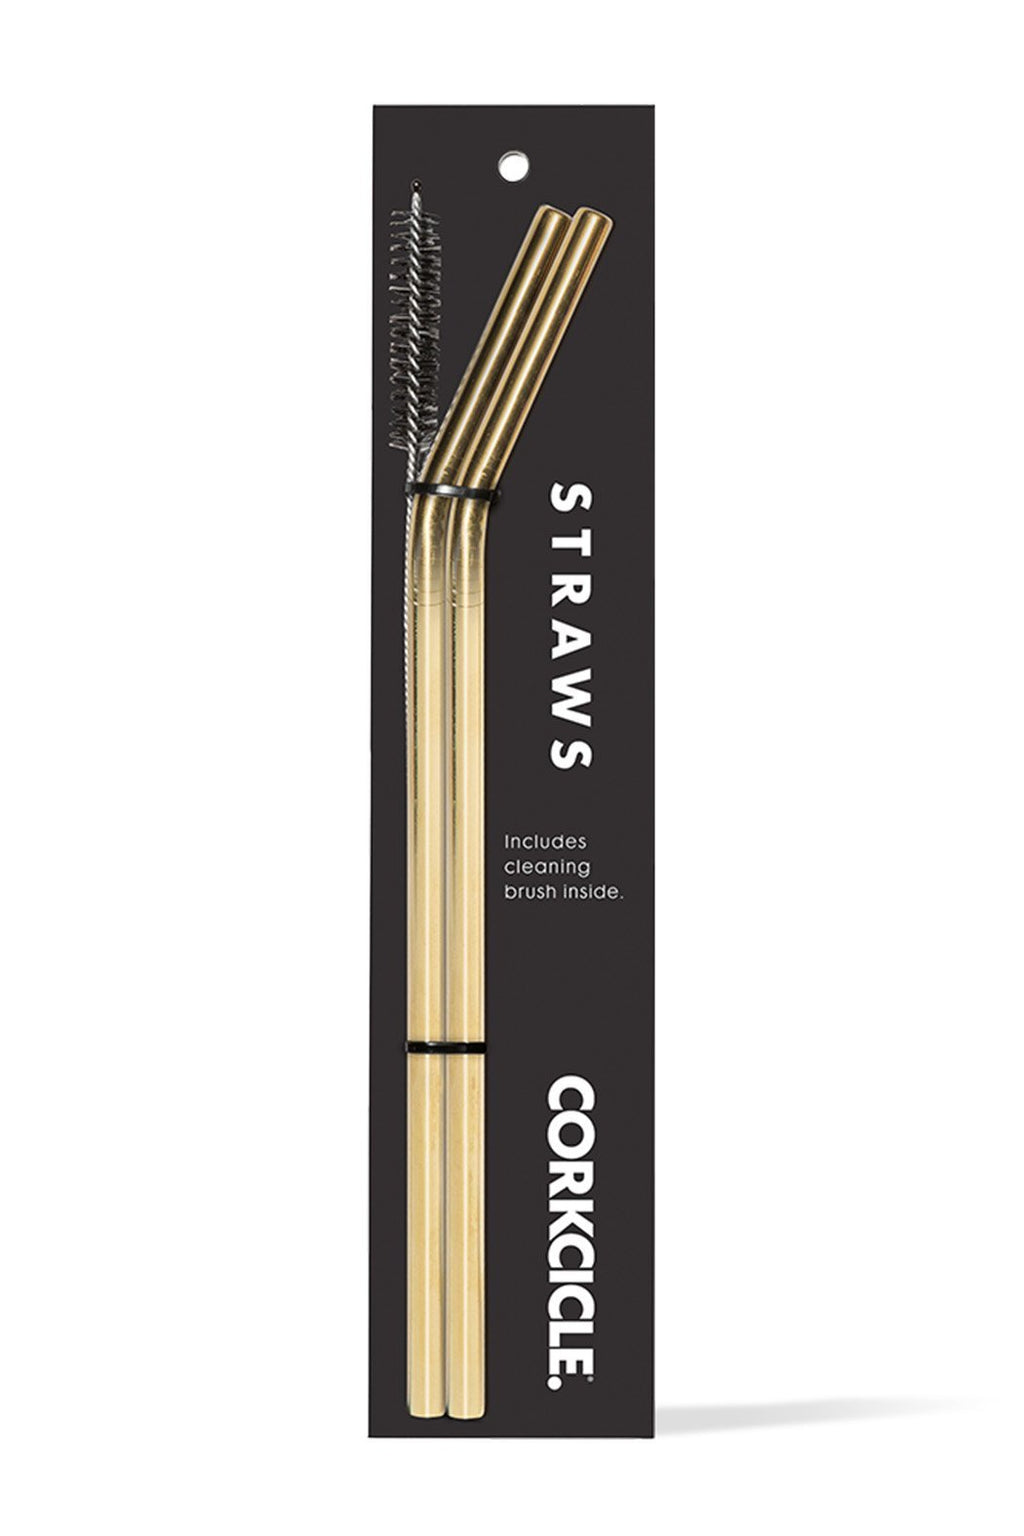 Corkcicle Gold Tumbler Straw, Pack of 2